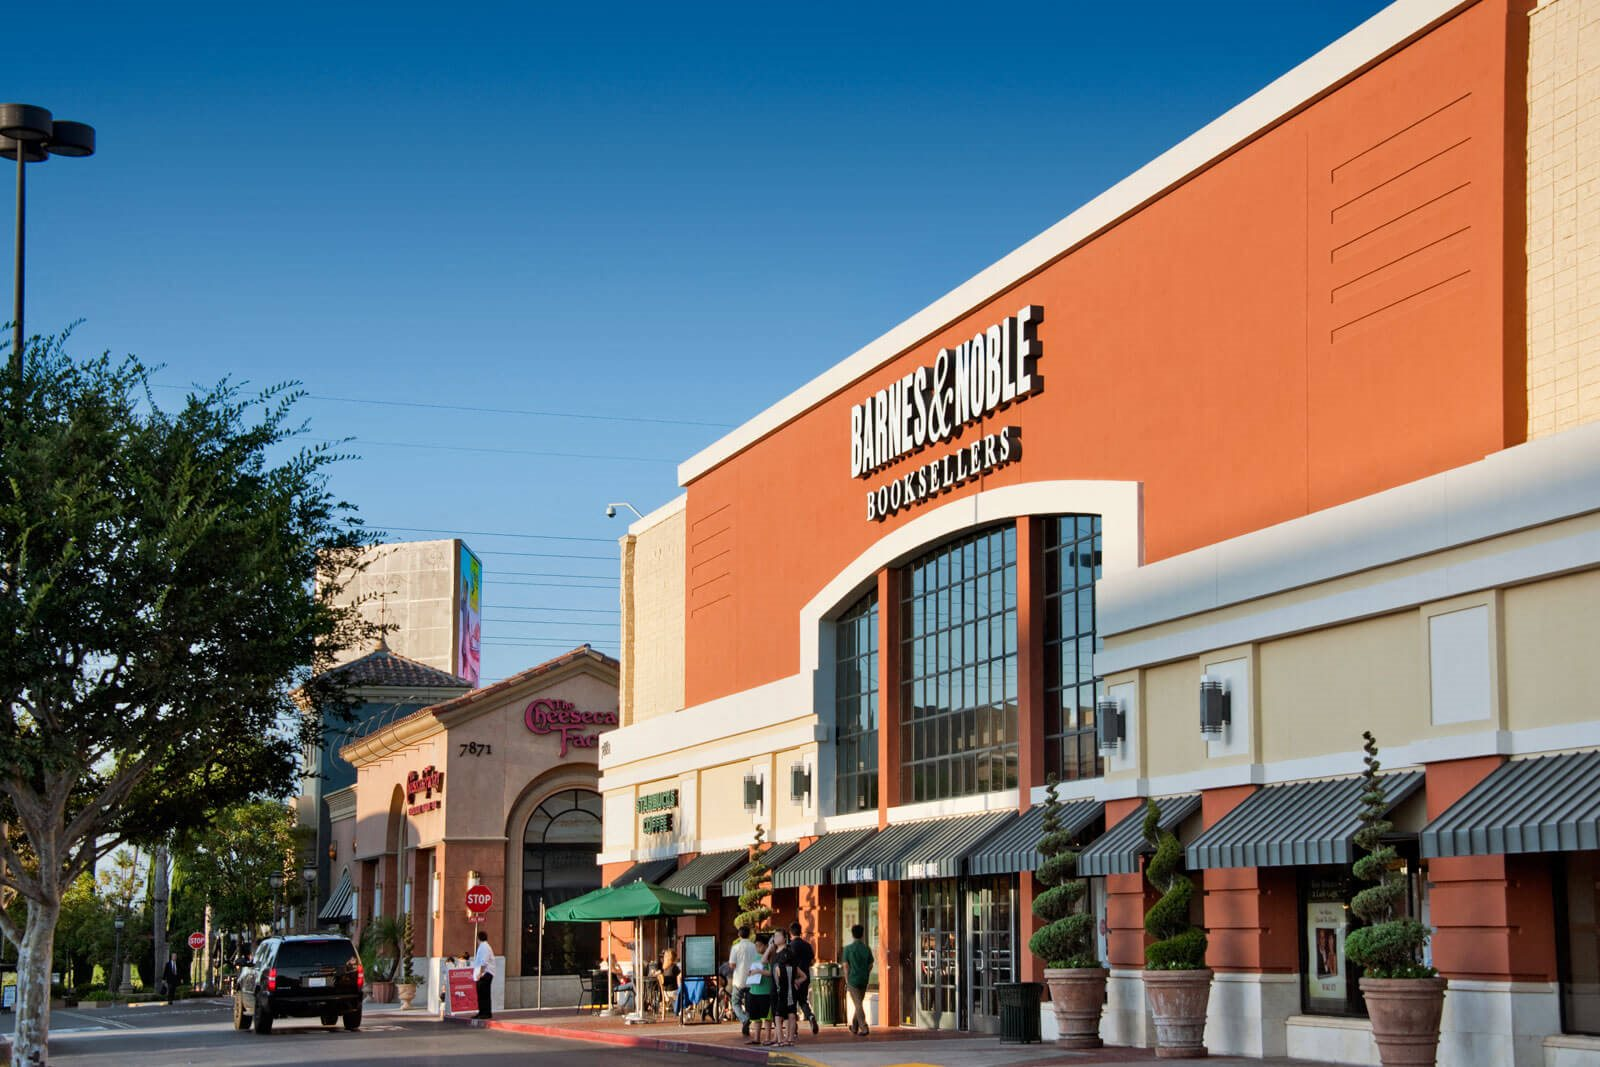 Nearby Barnes and Noble close to Boardwalk by Windsor, 7461 Edinger Ave., CA